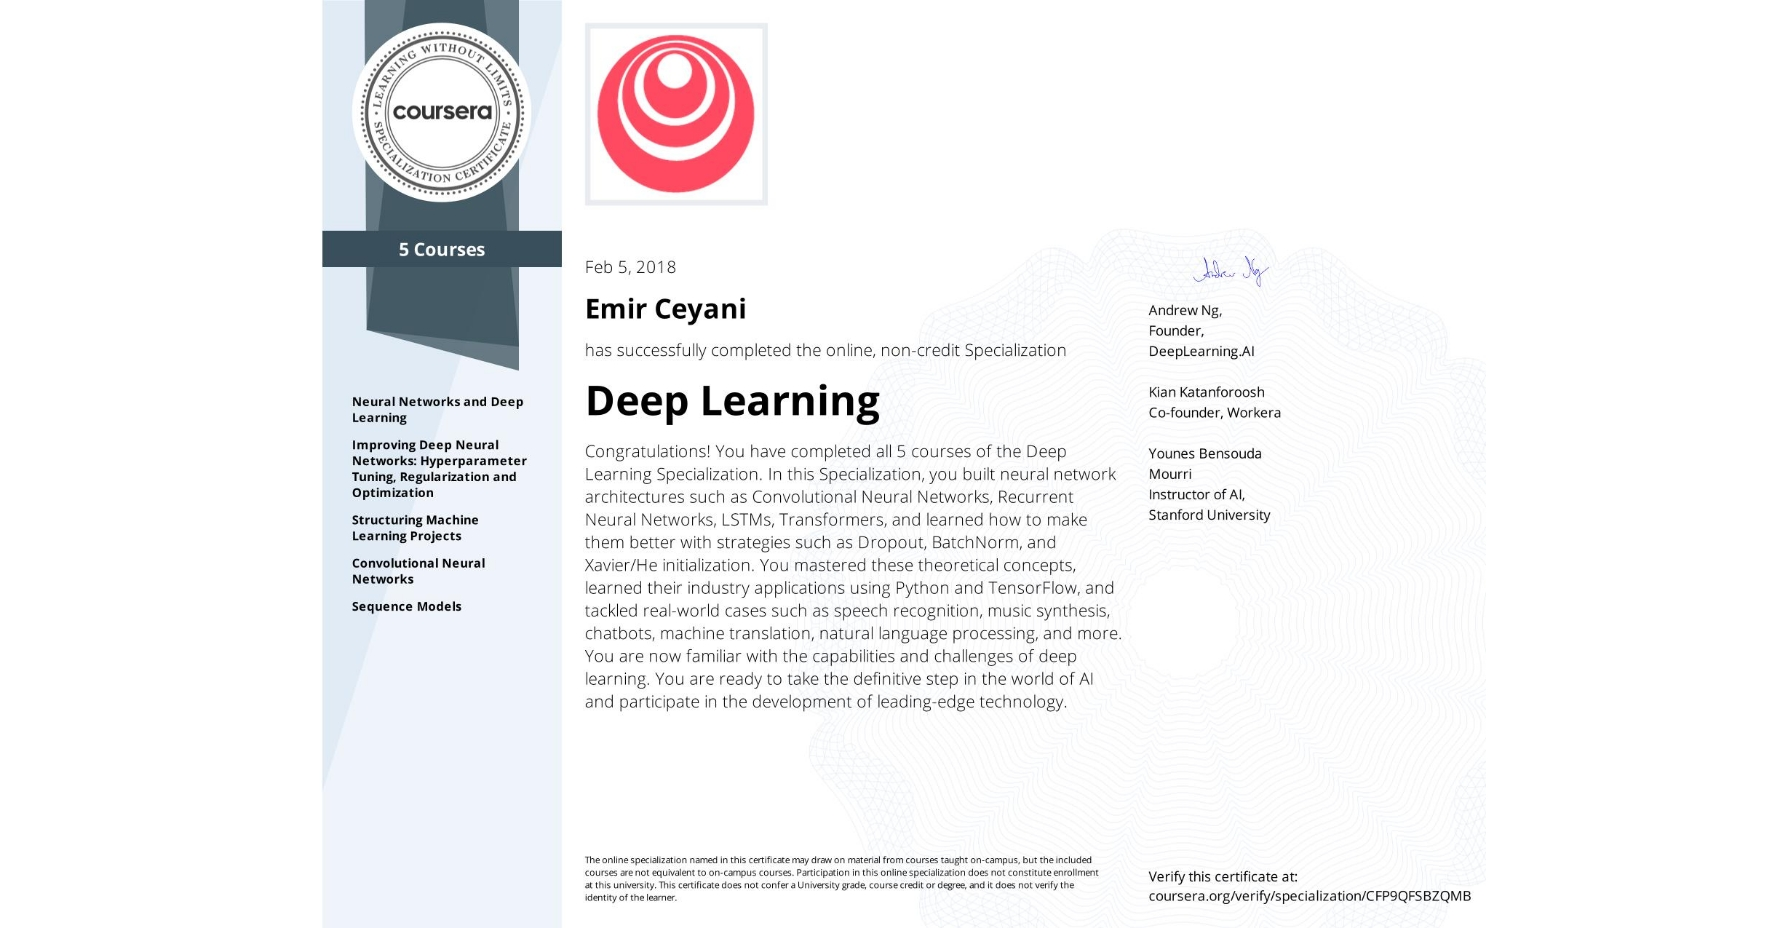 View certificate for Emir Ceyani, Deep Learning, offered through Coursera. The Deep Learning Specialization is designed to prepare learners to participate in the development of cutting-edge AI technology, and to understand the capability, the challenges, and the consequences of the rise of deep learning. Through five interconnected courses, learners develop a profound knowledge of the hottest AI algorithms, mastering deep learning from its foundations (neural networks) to its industry applications (Computer Vision, Natural Language Processing, Speech Recognition, etc.).